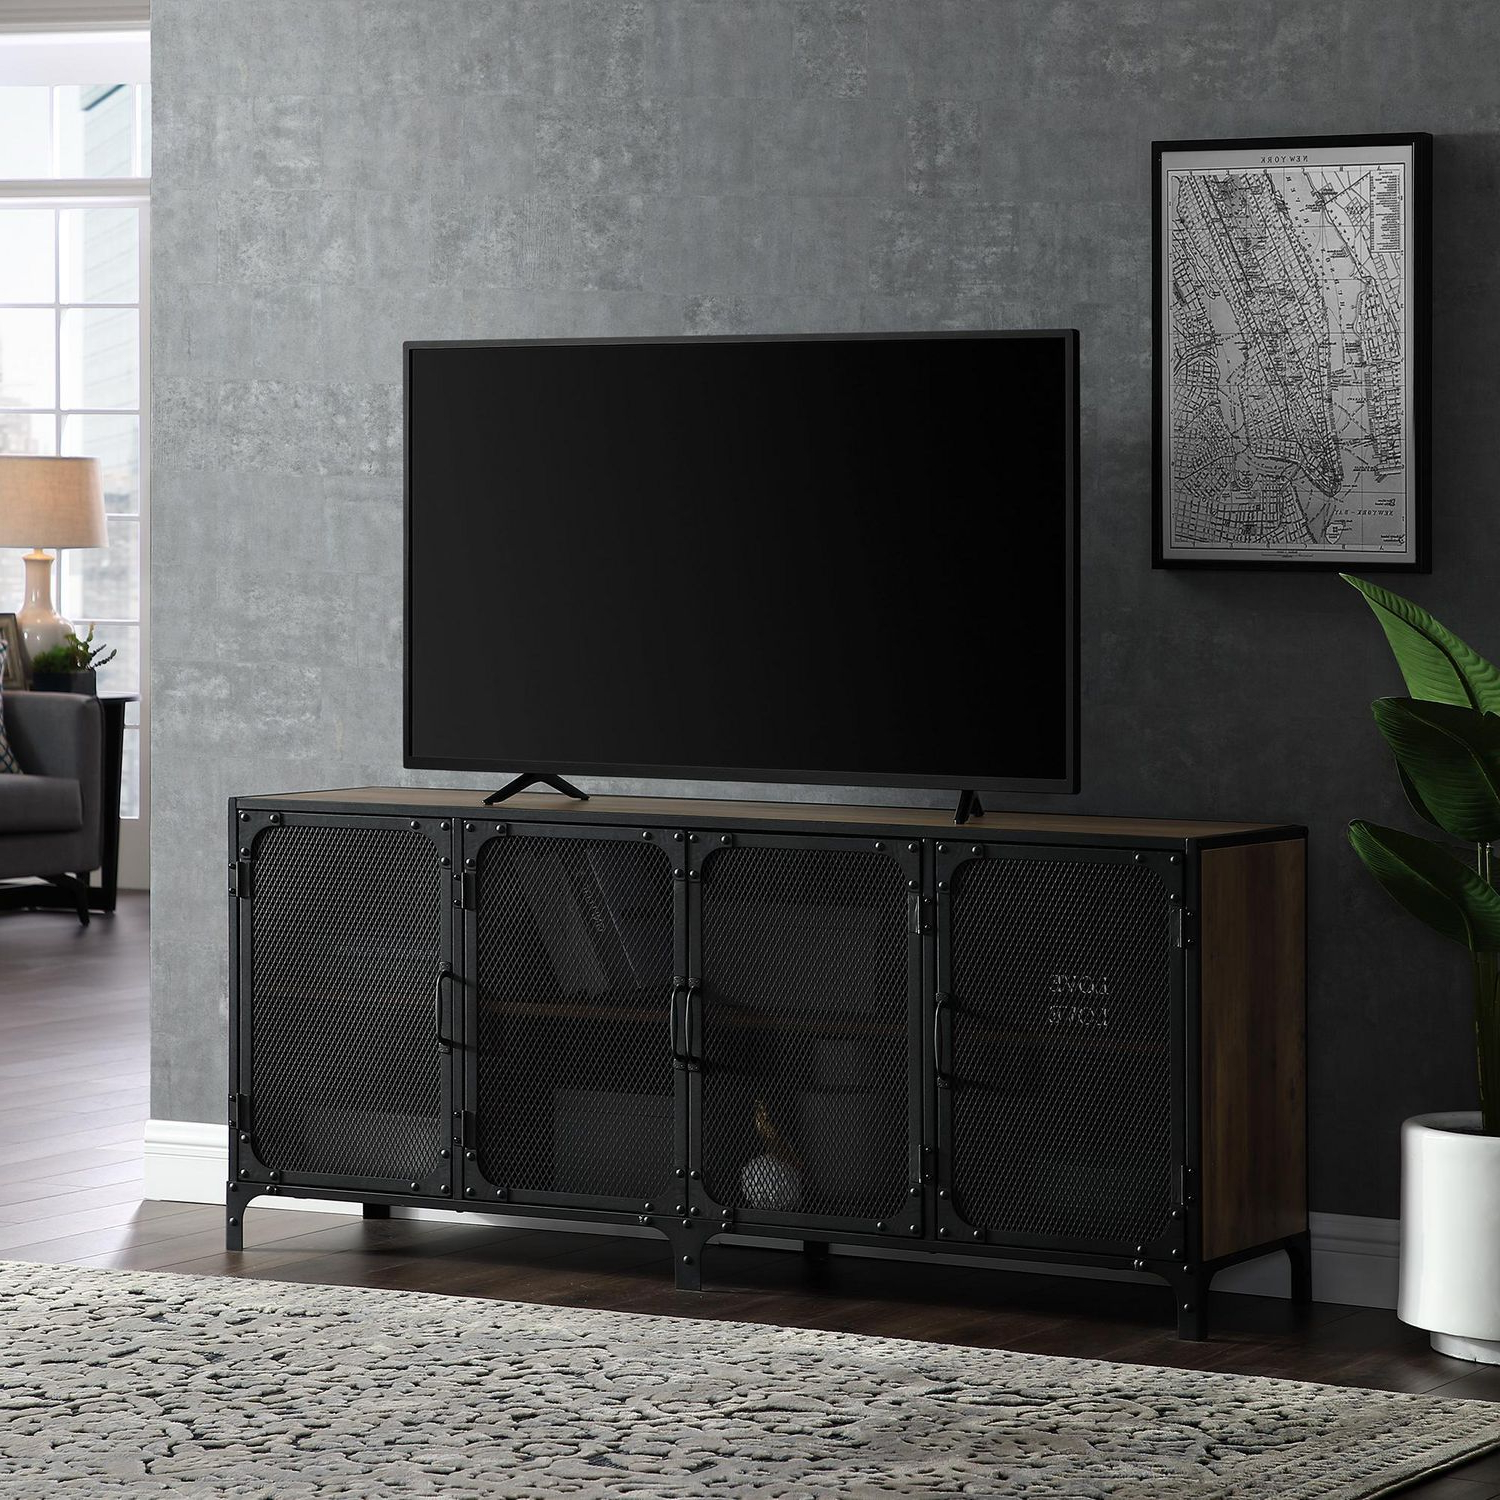 Recent Manor Park Industrial Mesh Tv Stand For Tv's Up To 66 Intended For Urban Rustic Tv Stands (View 2 of 10)